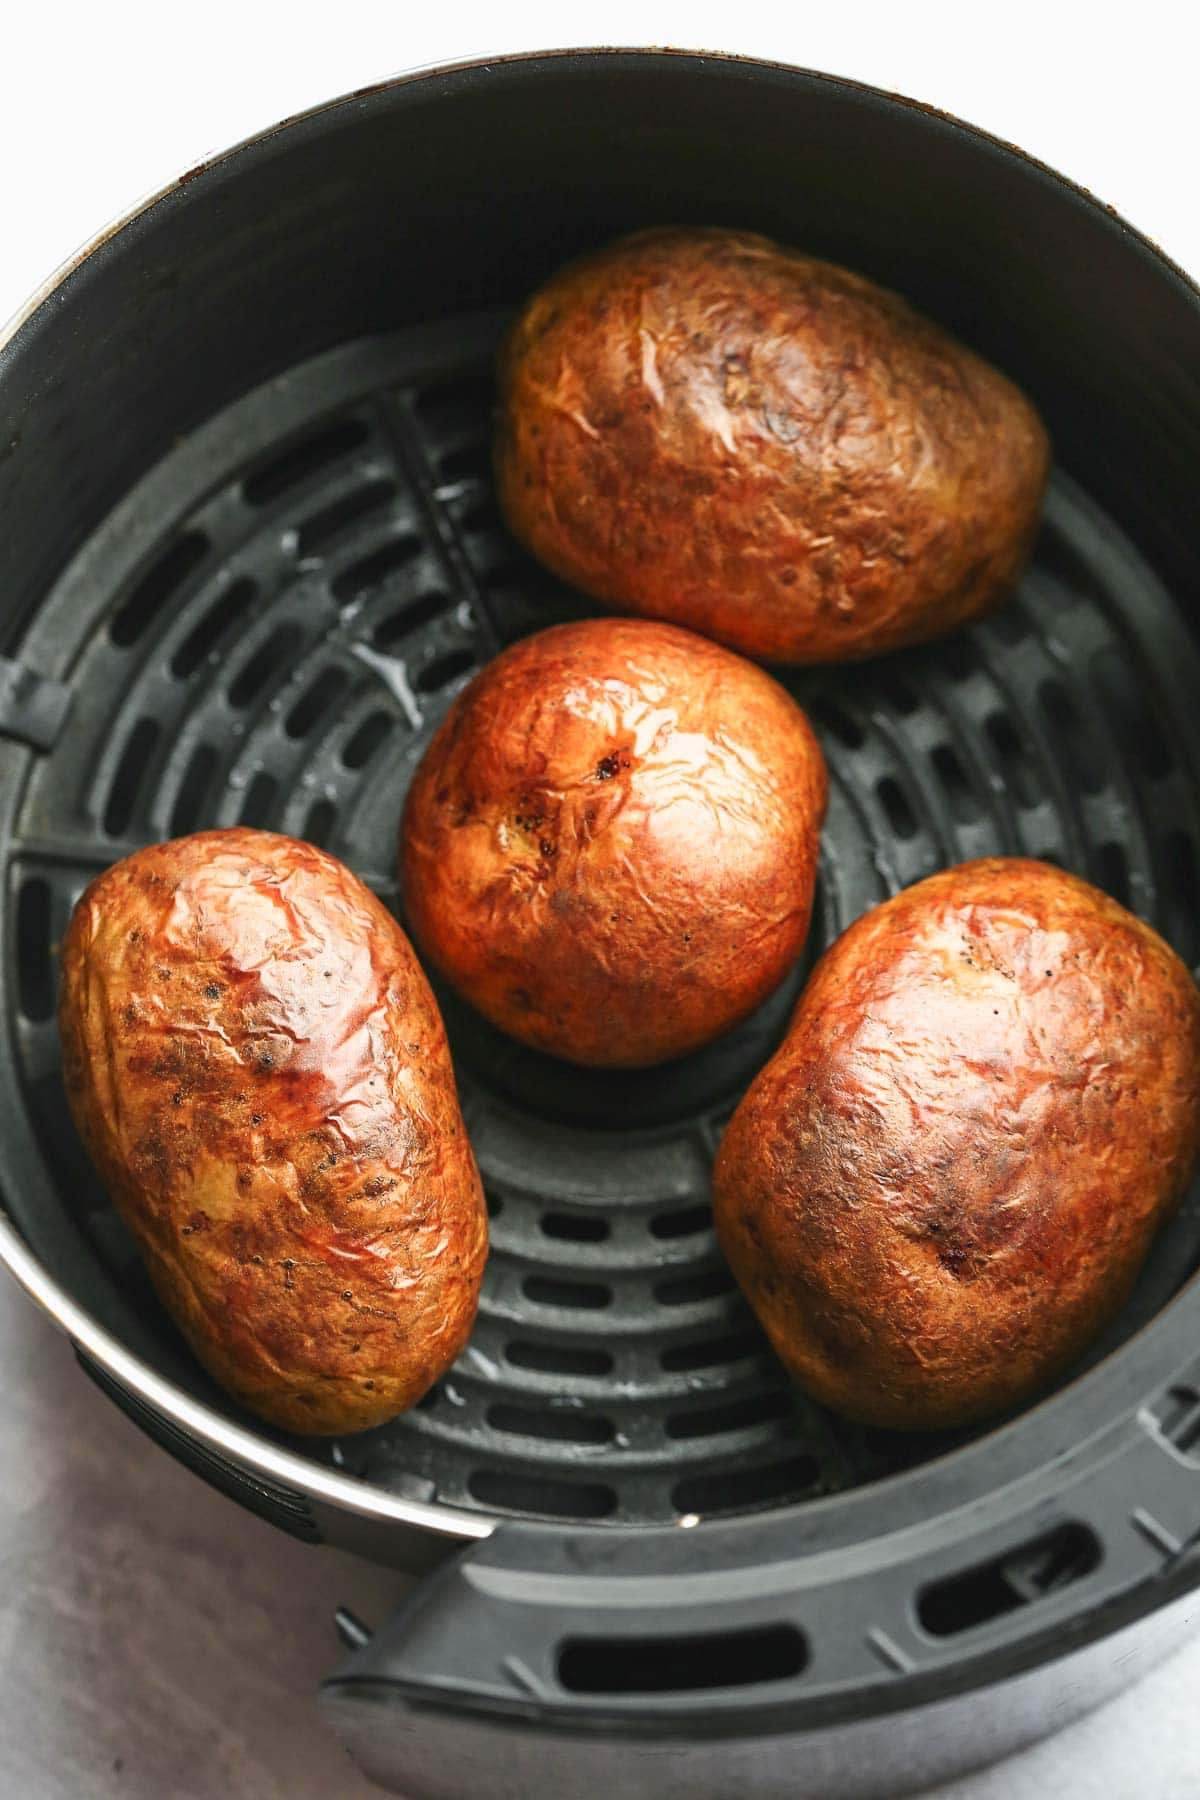 Four golden baked potatoes in the air fryer basket.